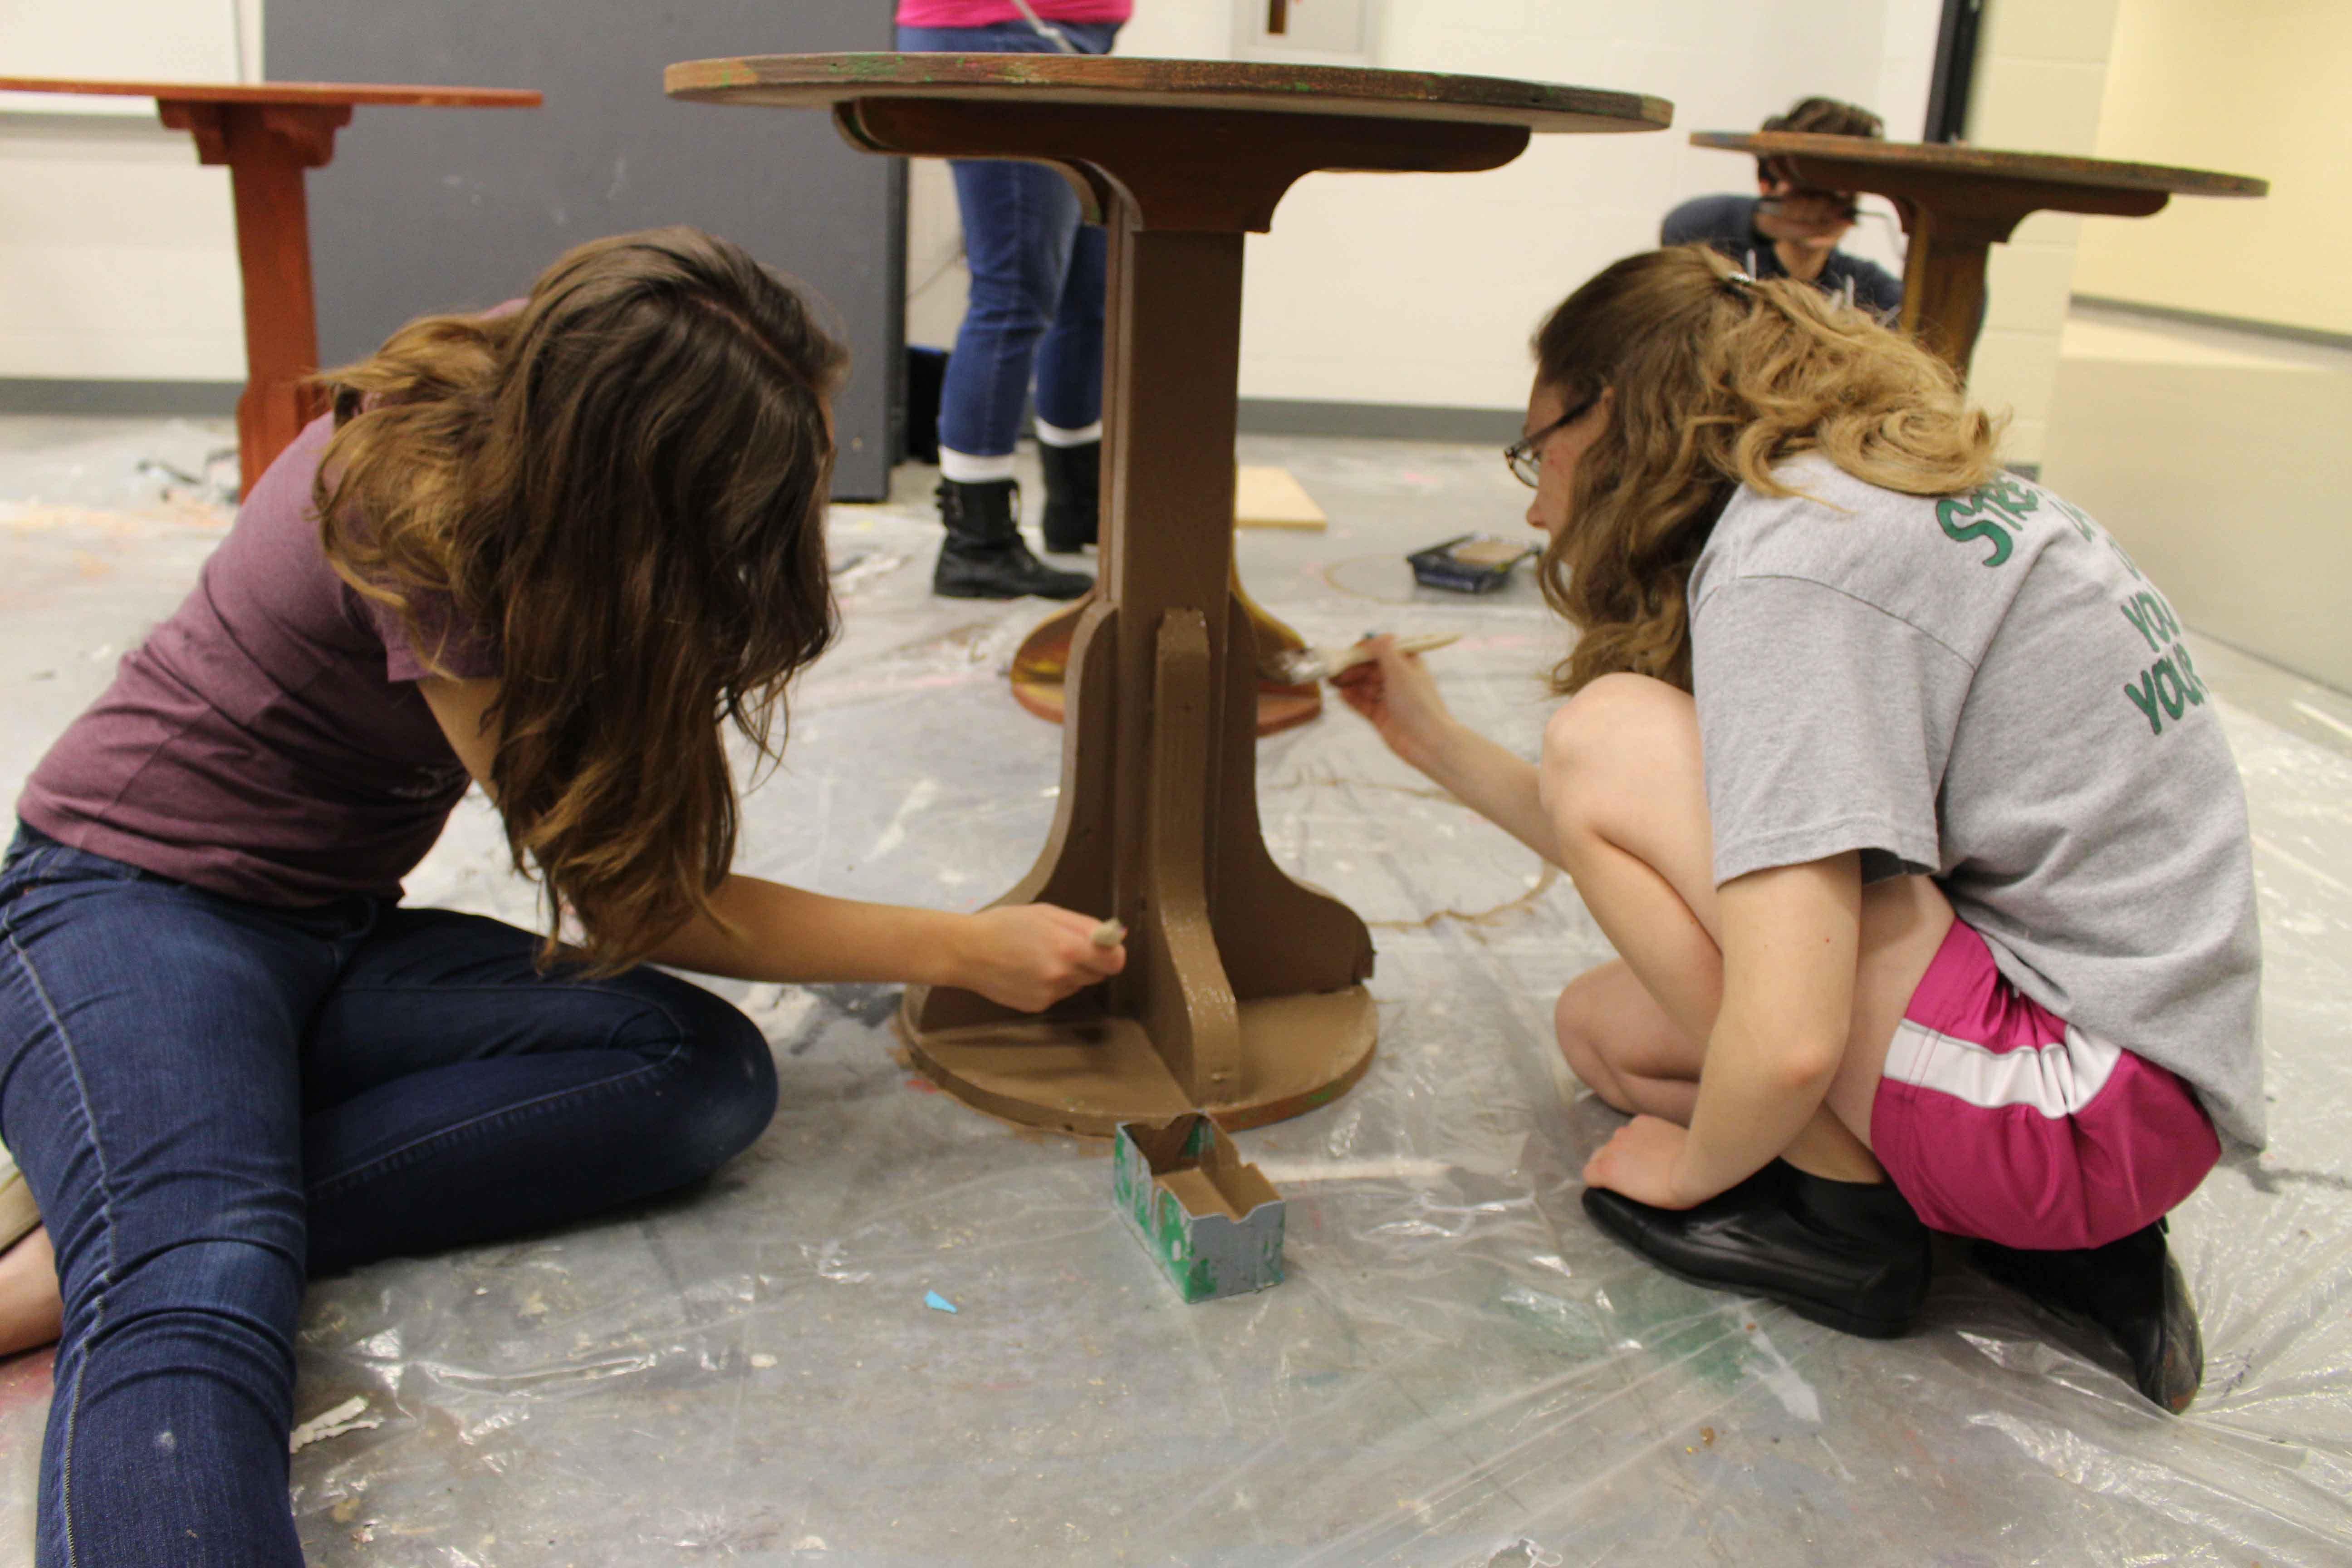 """•Working to get all of the props finished in time, seniors Anna Ohmart and Courtney Hittle paint one of the tables for a café scene on Oct. 28. Anna has been in Stagecraft for 2 years. """"I was in Stagecraft last year. I really enjoyed building sets and stuff,"""" said Ohmart. """"I really like working with my hands."""""""